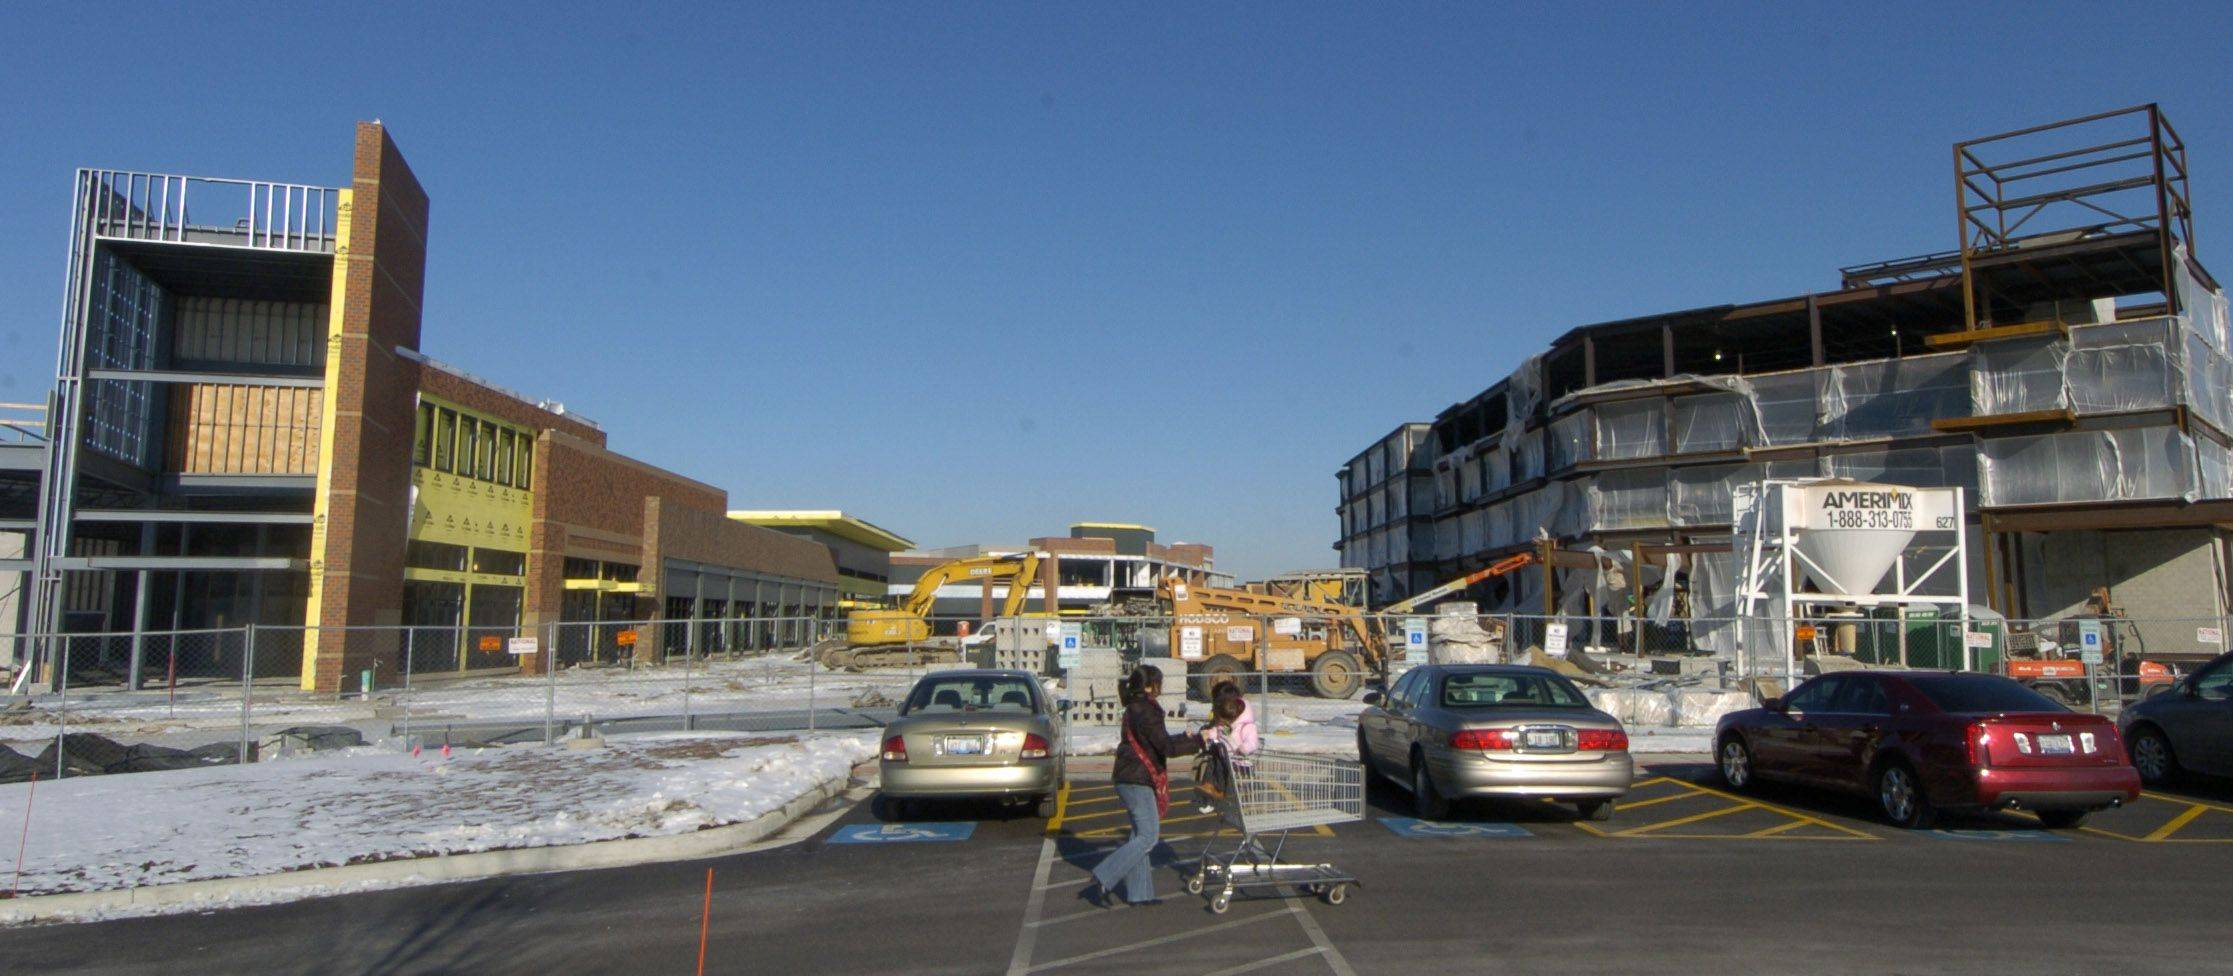 Randhurst Village in Mount Prospect, a mixed-use center with retail, restaurant, theater, hotel and office space, is on track to open in spring 2011. Its developers say the $200 million project has added several new tenants in recent months.